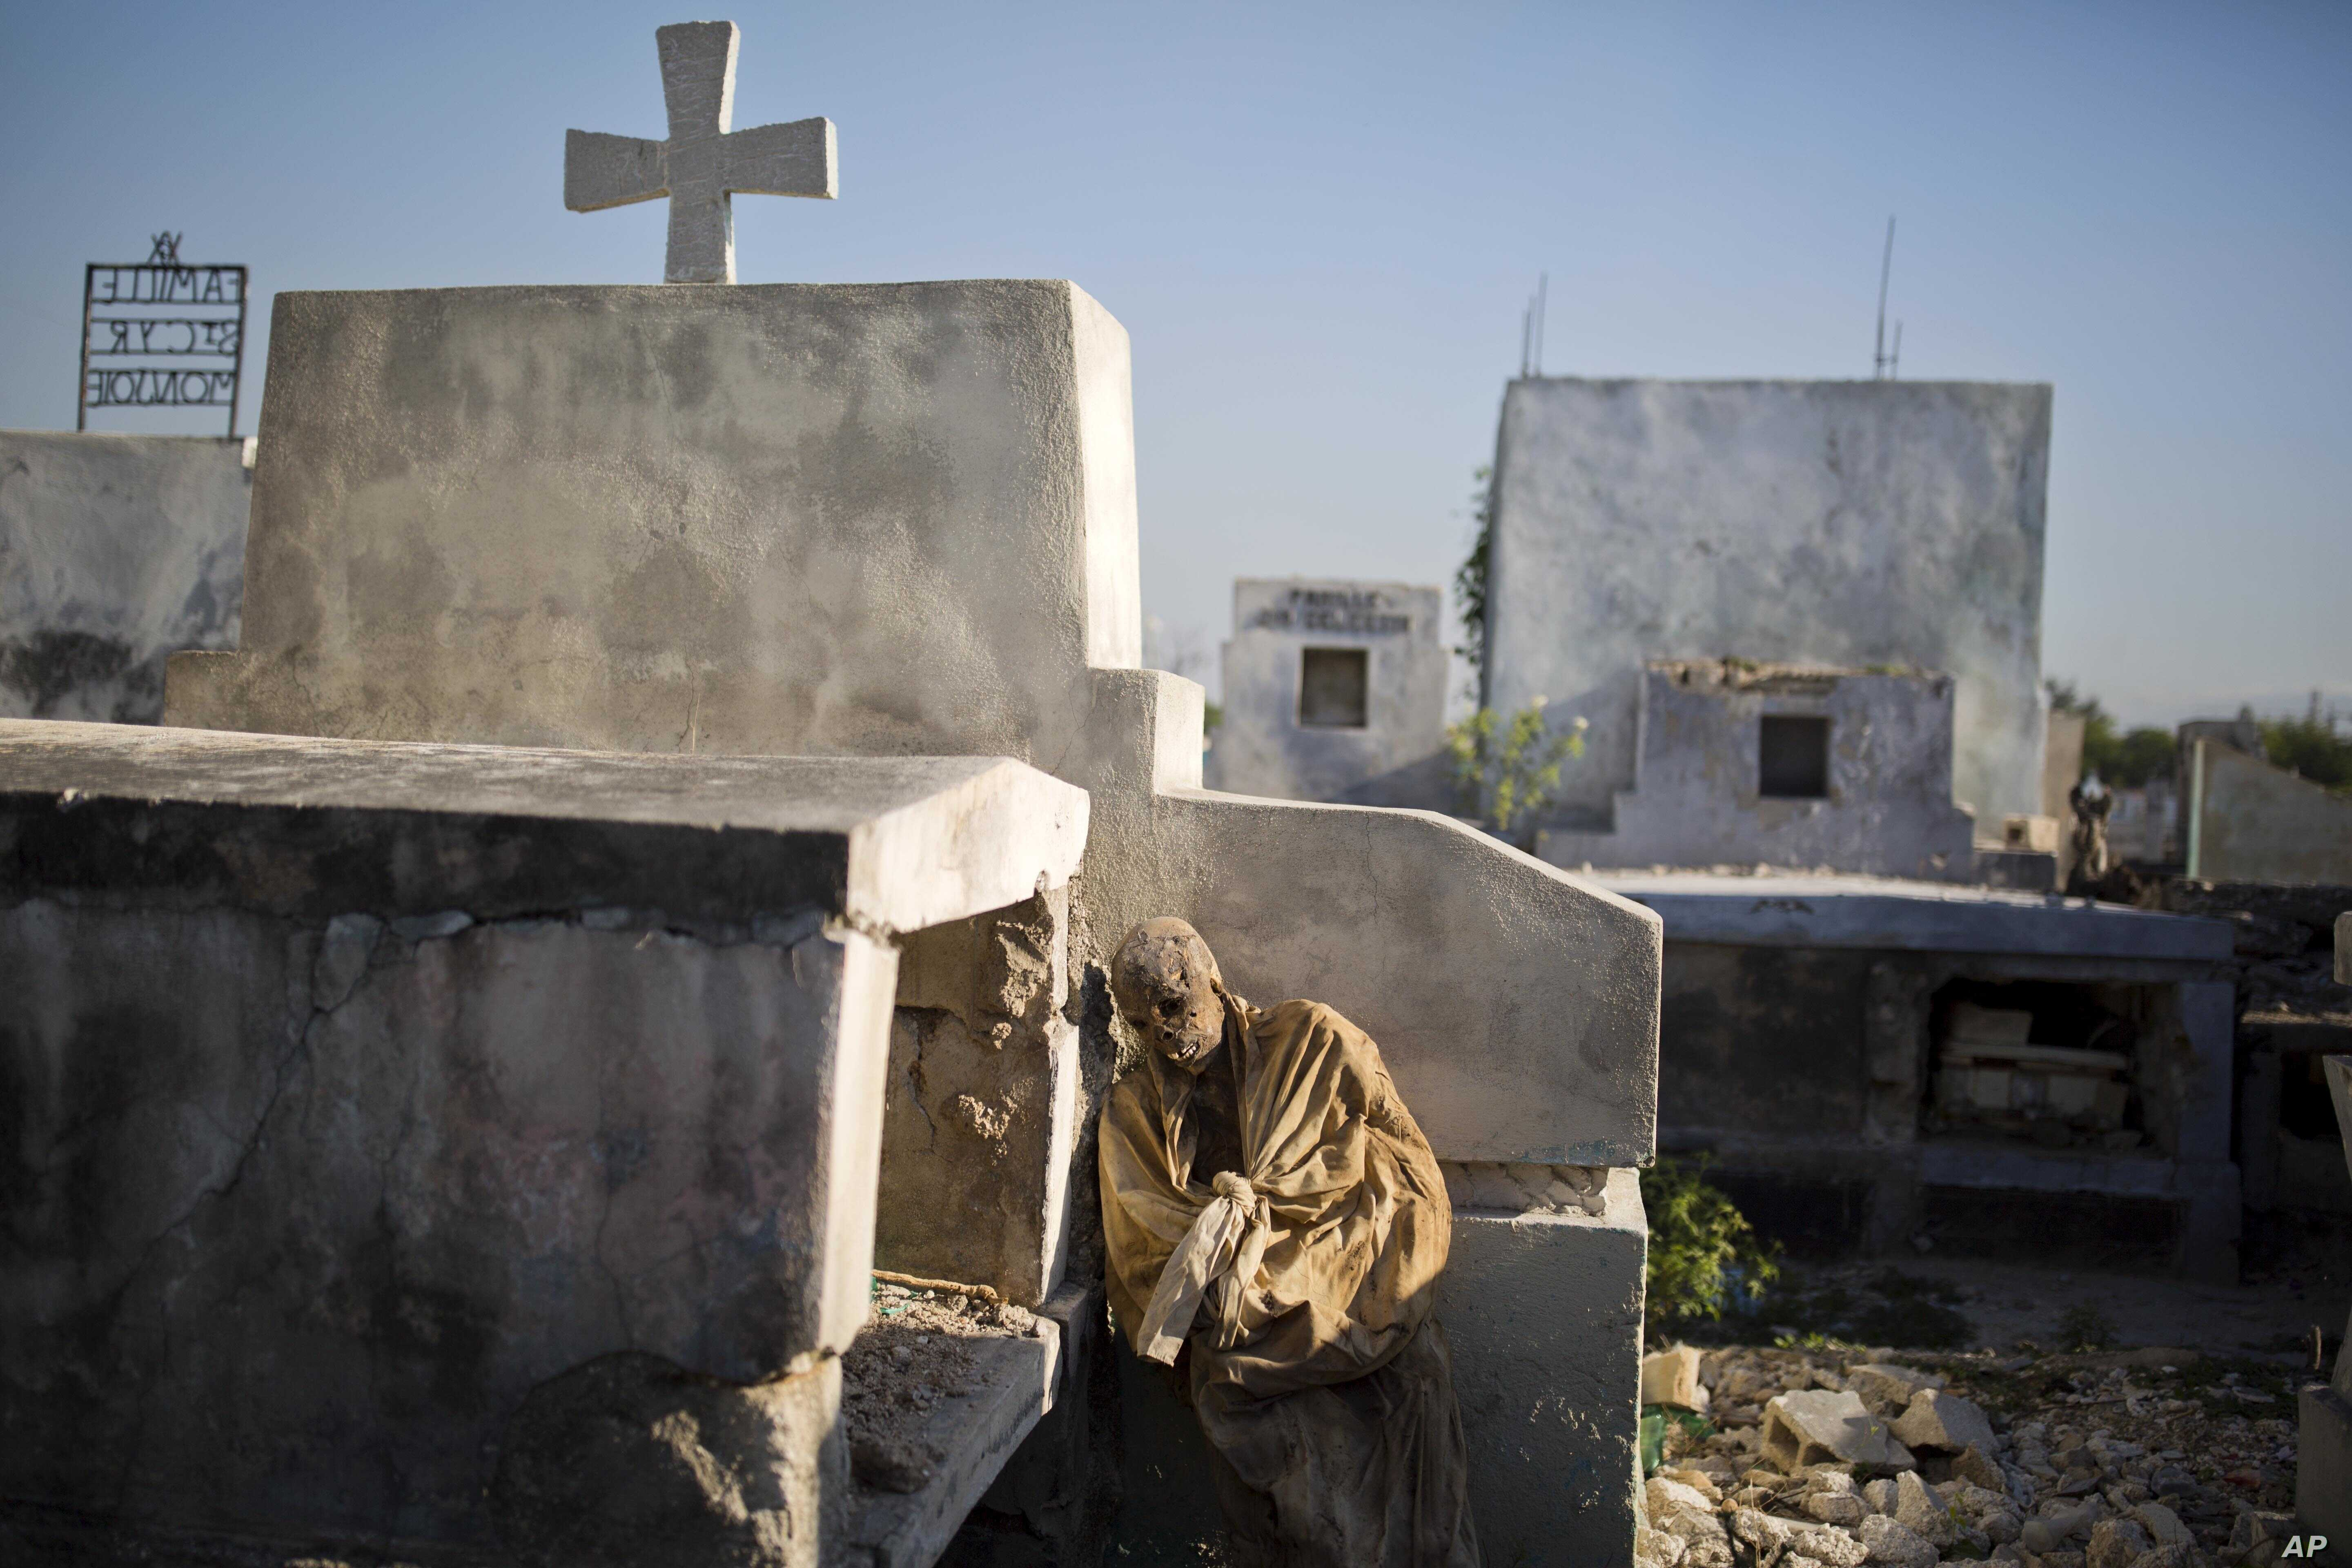 Grieving Haitians Go Into Lifetime of Debt to Fund Funerals | Voice